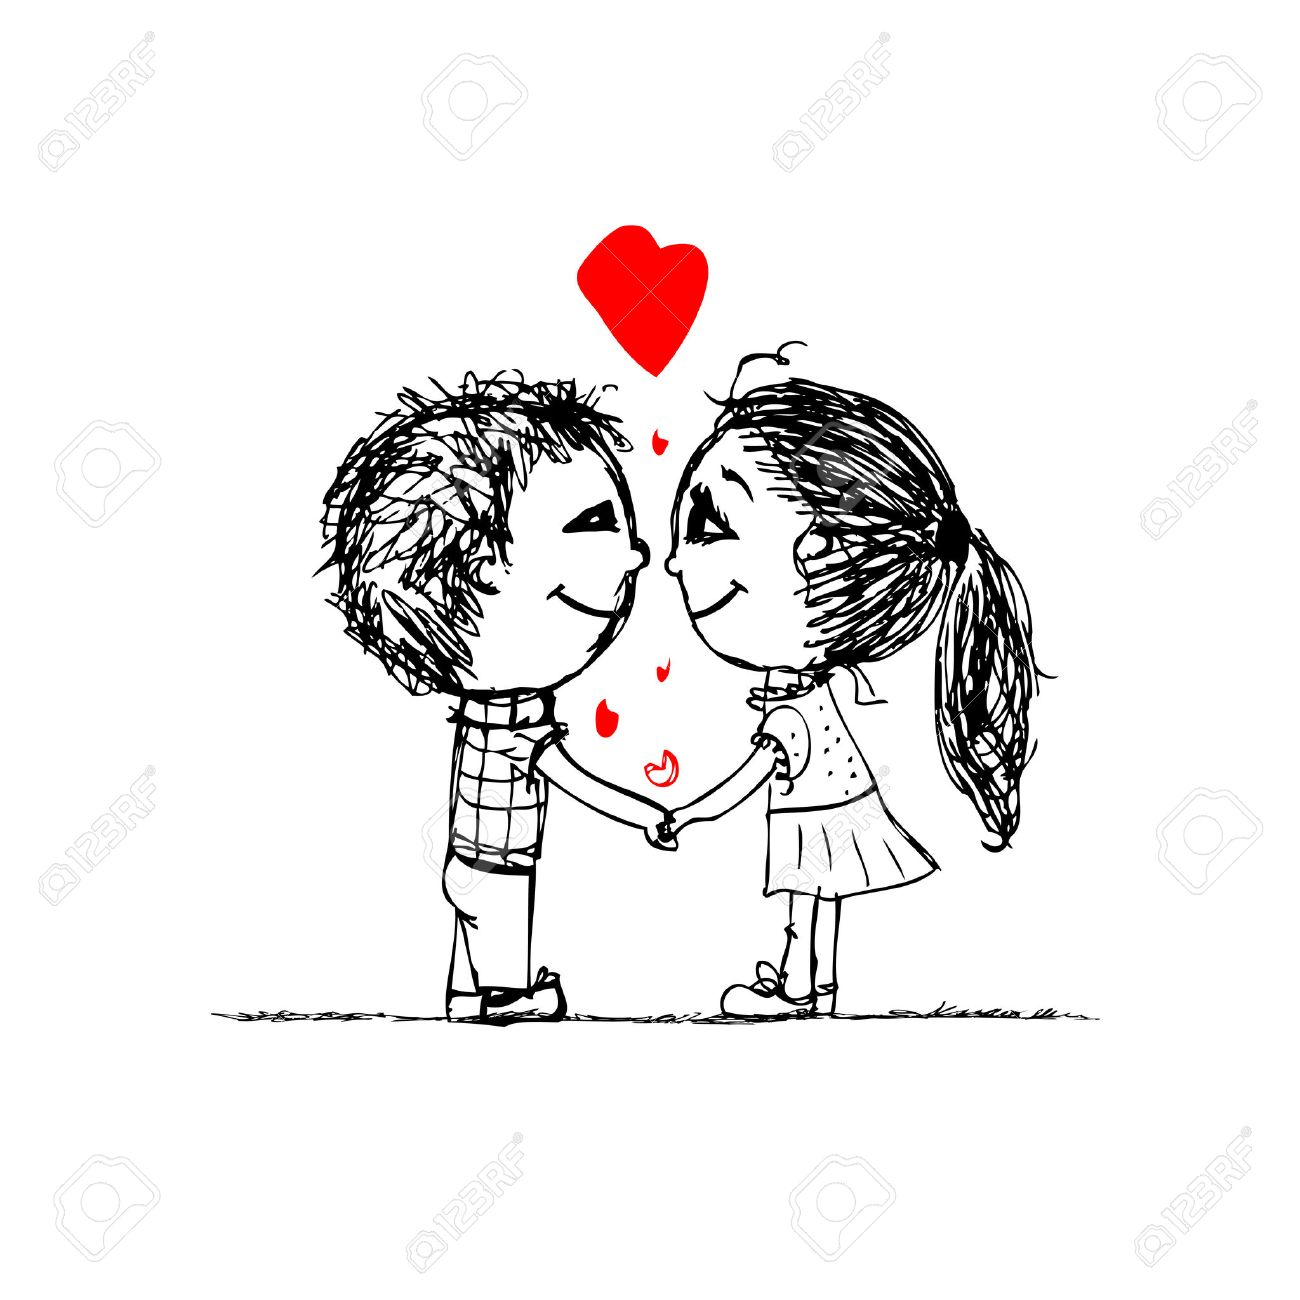 Couple in love together valentine sketch for your design stock vector 27321778